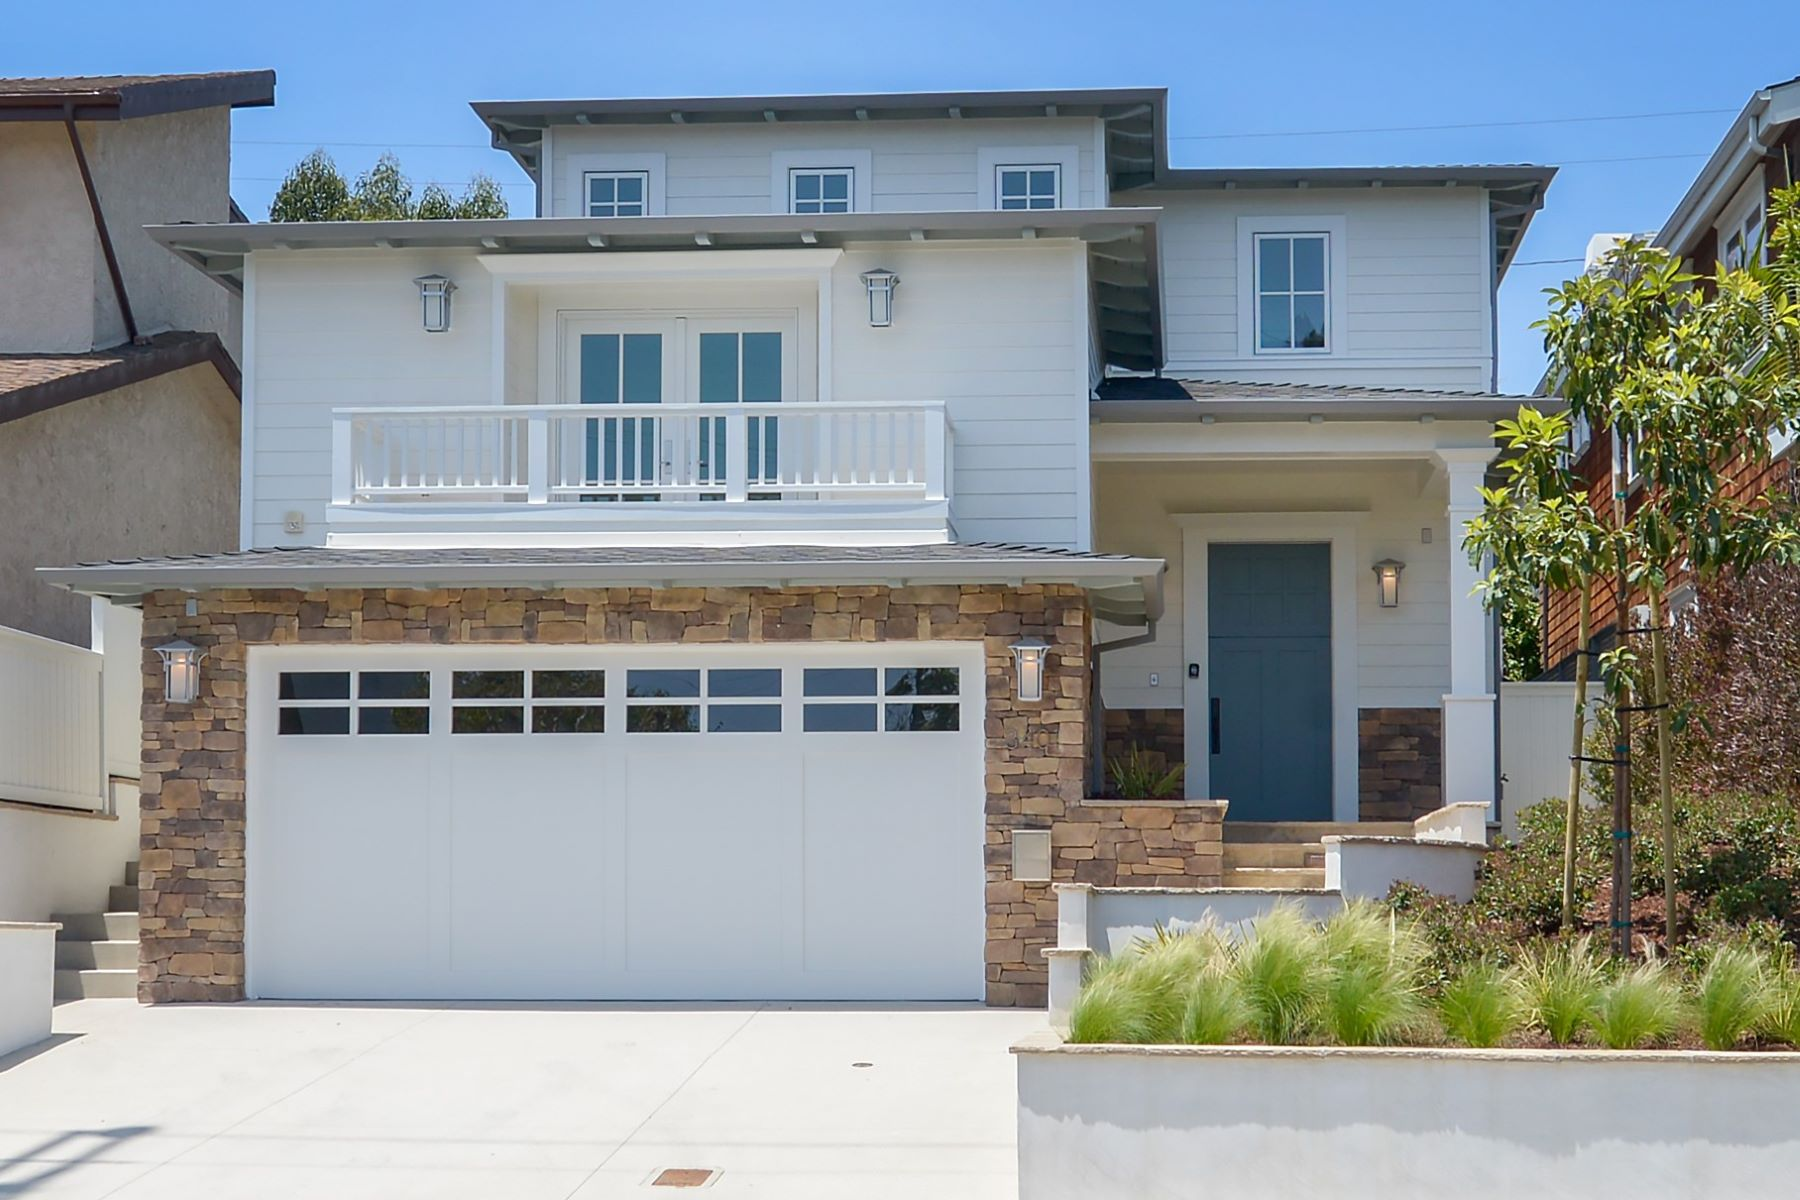 Single Family Home for Sale at 3401 Pacific Ave Manhattan Beach, California 90266 United States